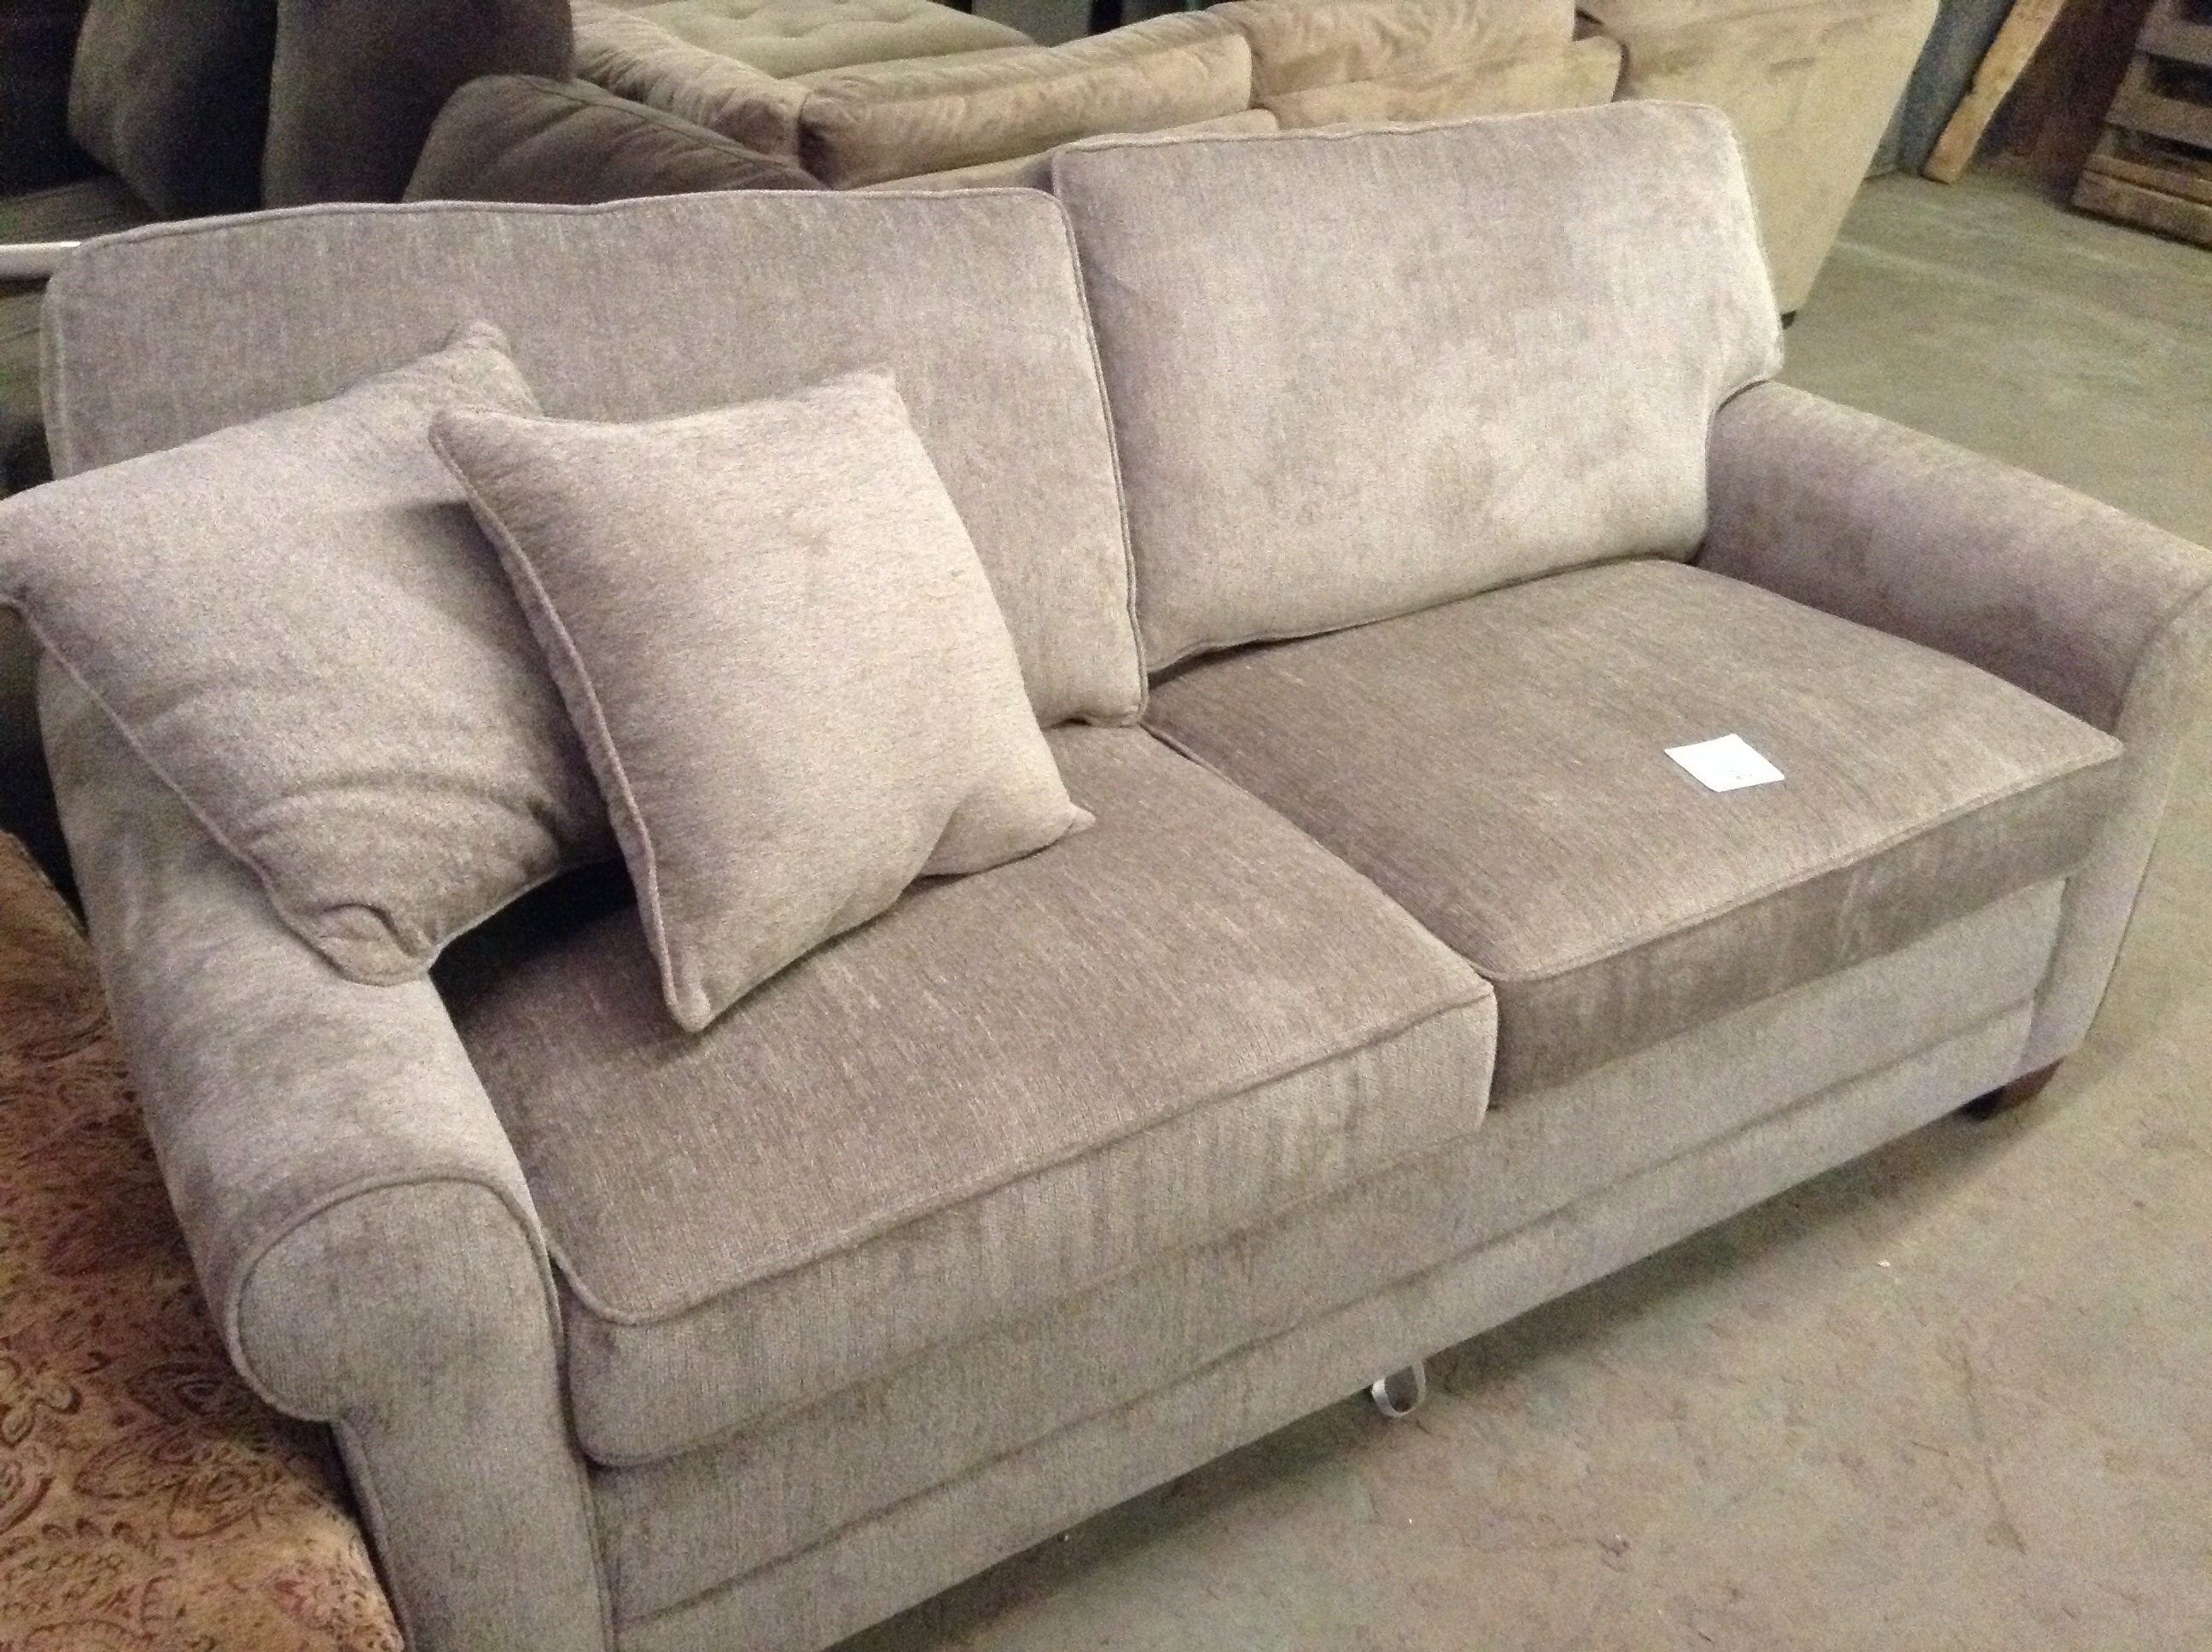 Beau Beautiful Chenille Fabric Sofa 66 With Additional Sofas And Couches Ideas  With Chenille Fabric Sofa